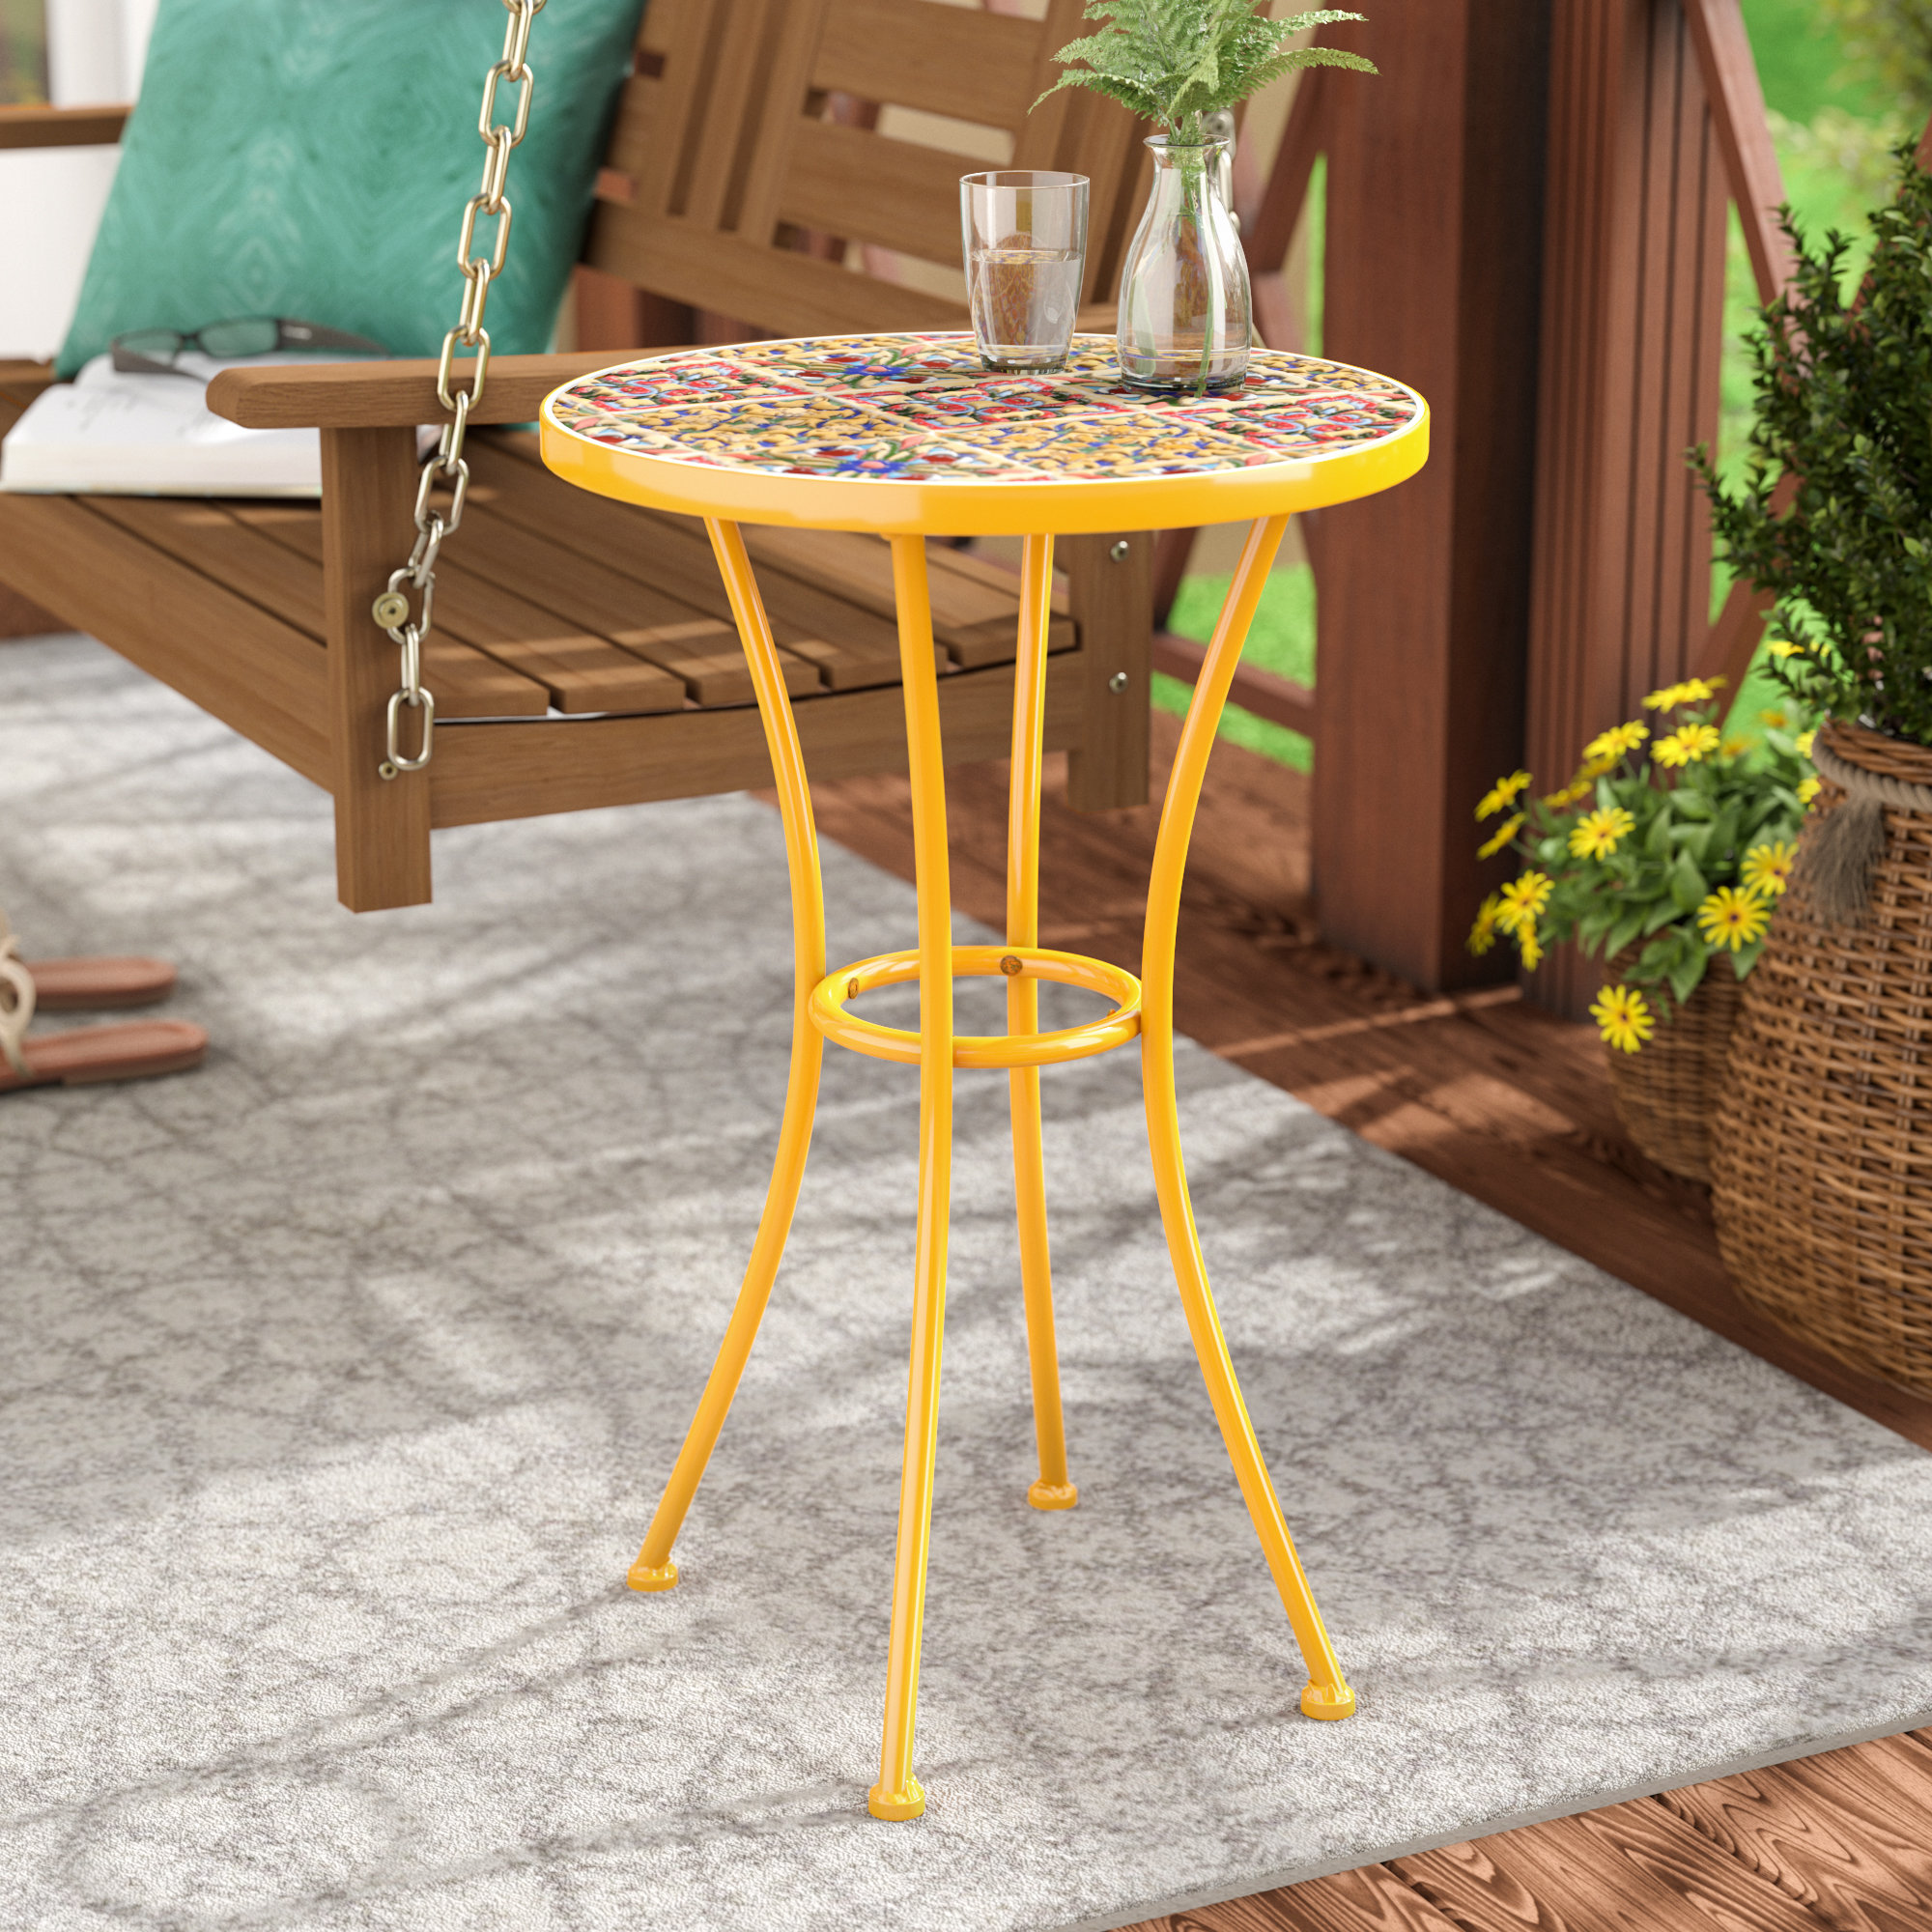 bungalow rose chantel outdoor ceramic tile side table reviews iron oakwood furniture chairs mirrored end target light shower head white lamps for bedroom ikea desk and storage